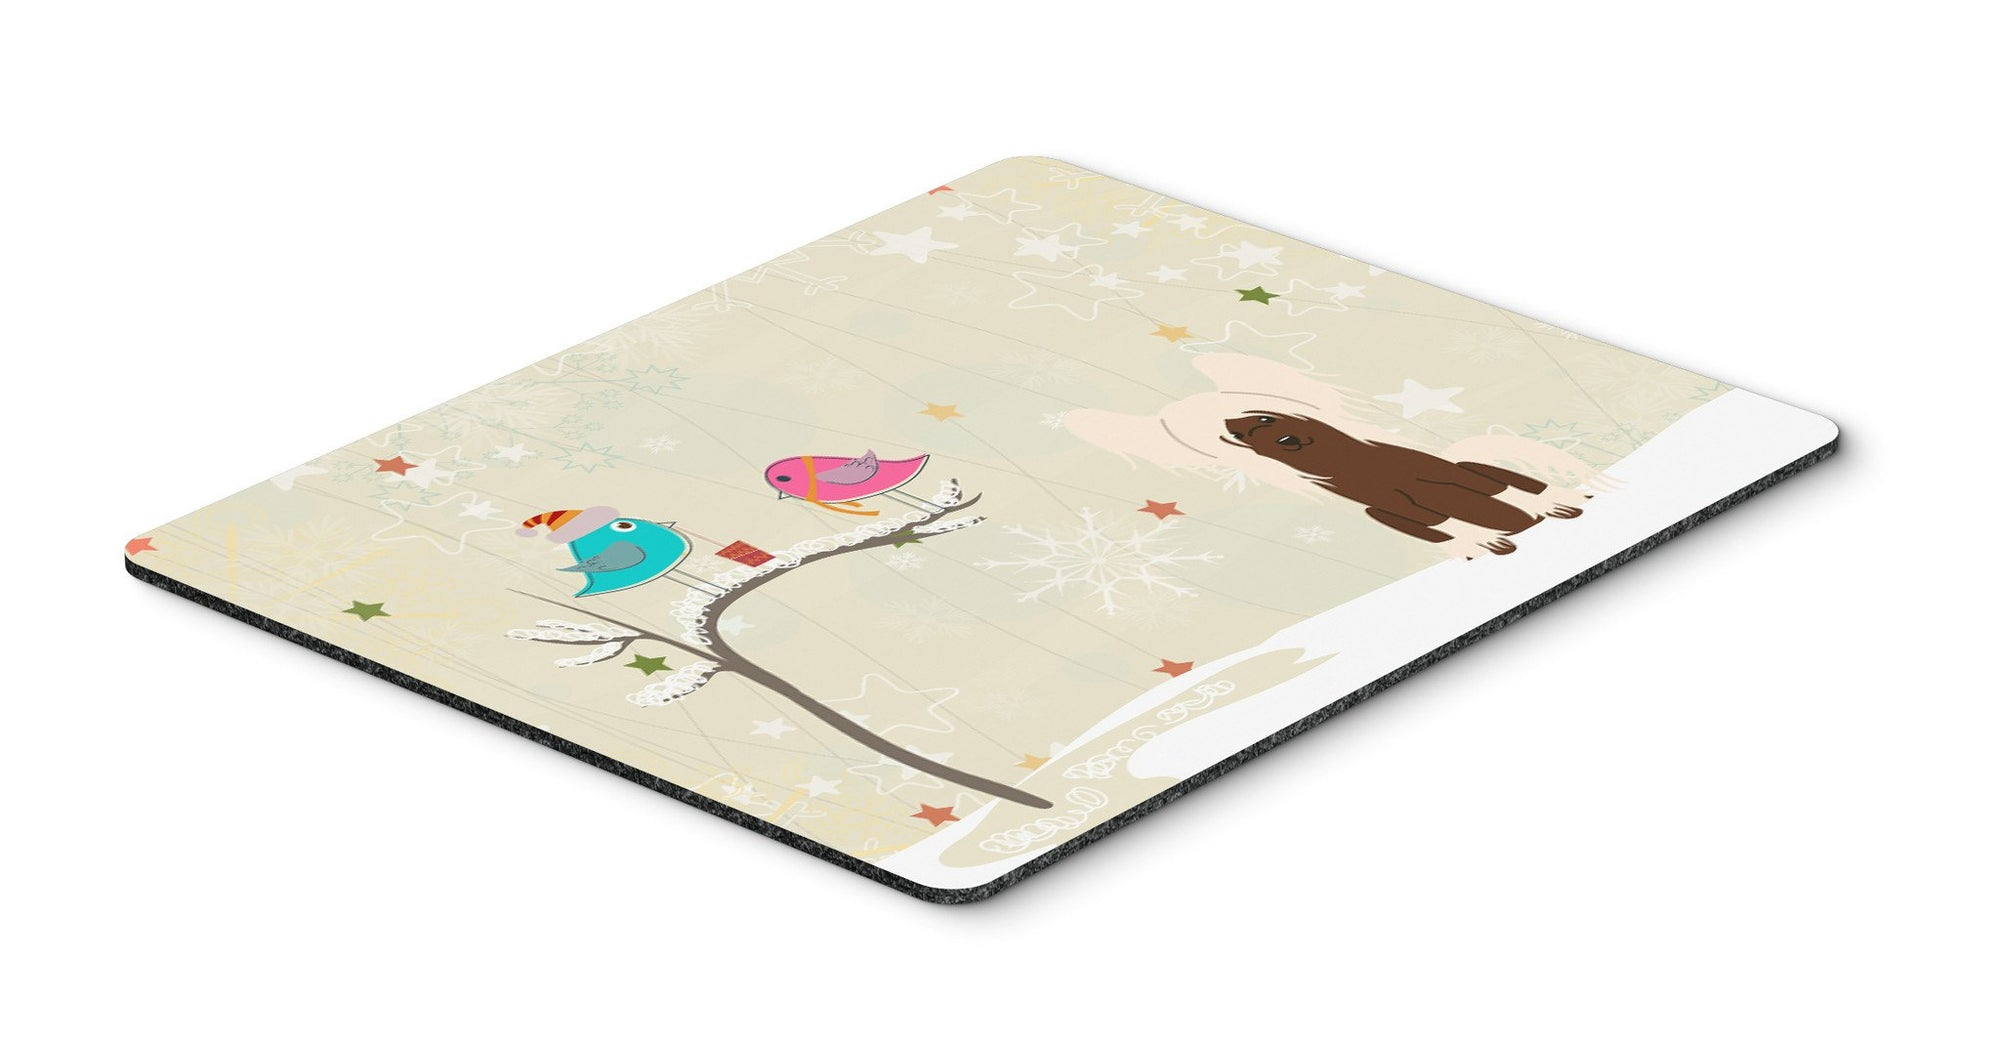 Christmas Presents between Friends Chinese Crested Cream Mouse Pad, Hot Pad or Trivet BB2585MP by Caroline's Treasures